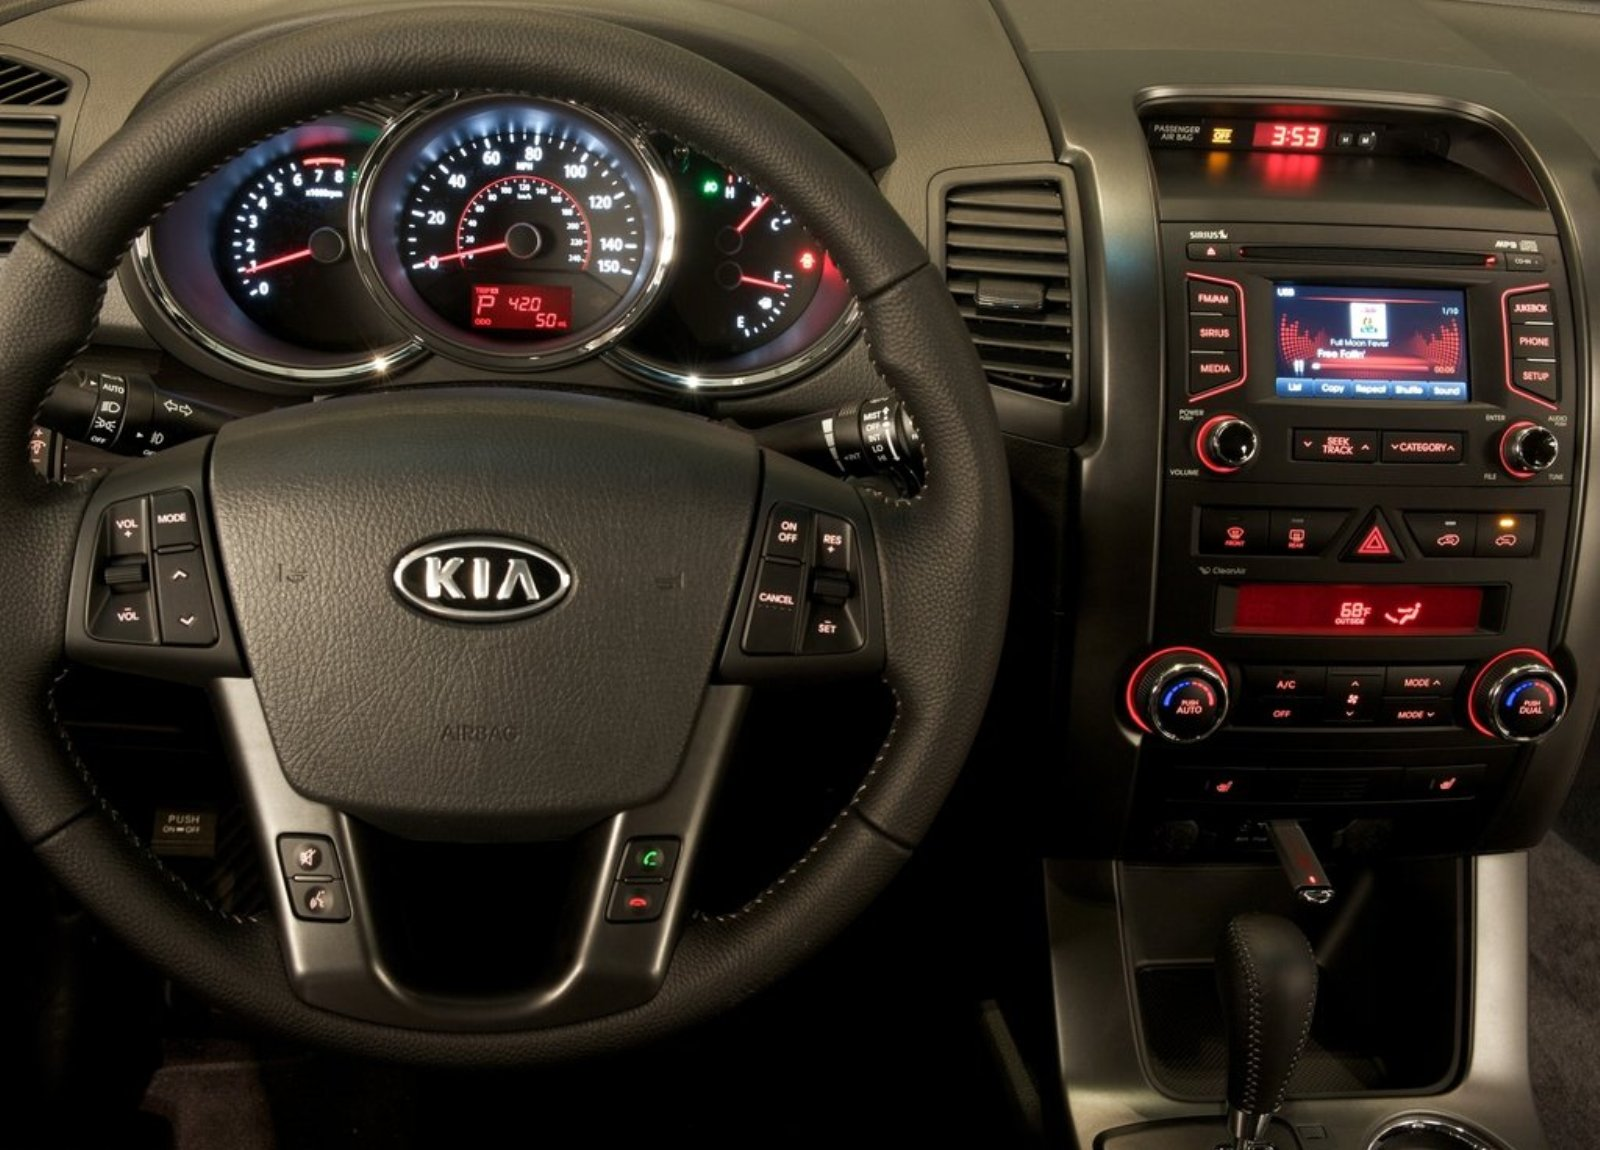 2013 Kia Sorento Audio Wiring 2013 kia sorento radio audio wiring diagram schematic colors 2003 kia sorento wiring diagram at crackthecode.co